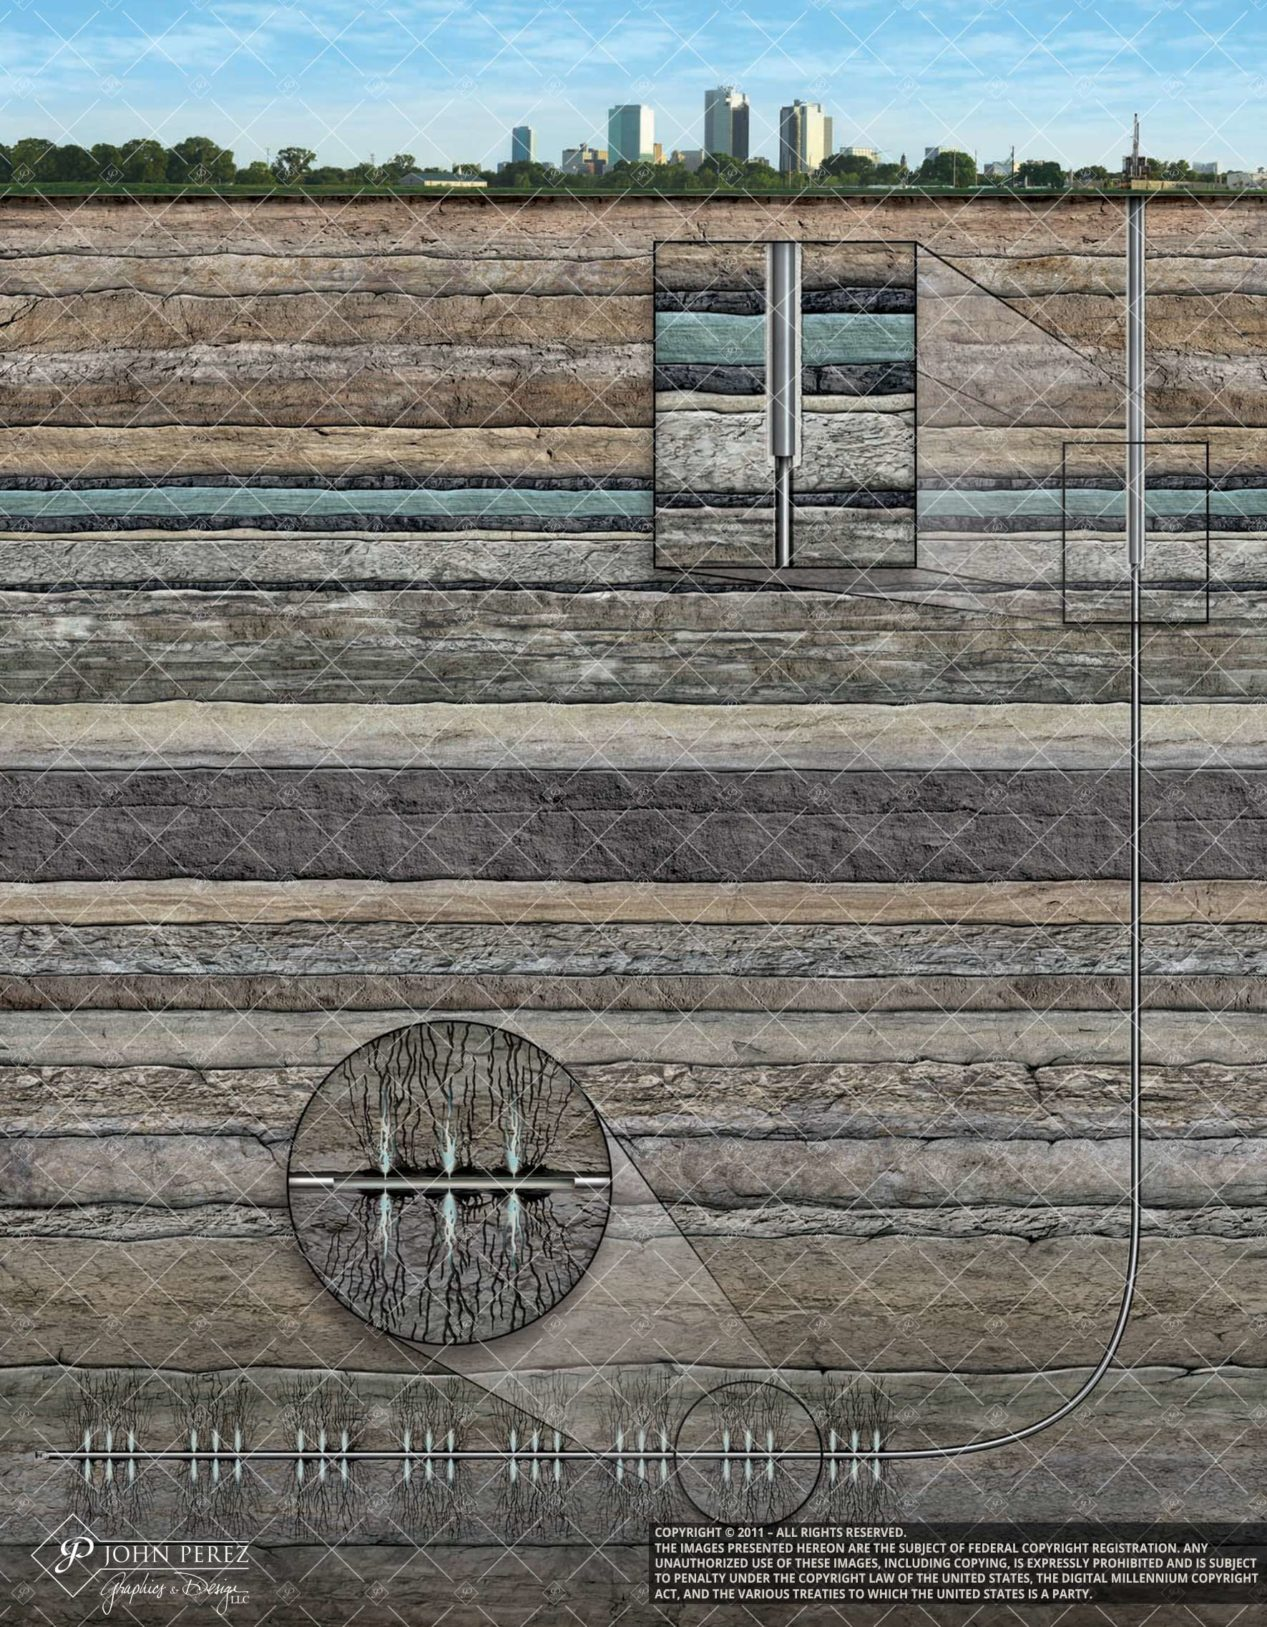 Horizontal Drilling Frac Under City No Blow Up, john perez graphics, oil gas schematic, oil gas illustration, horizontal drilling